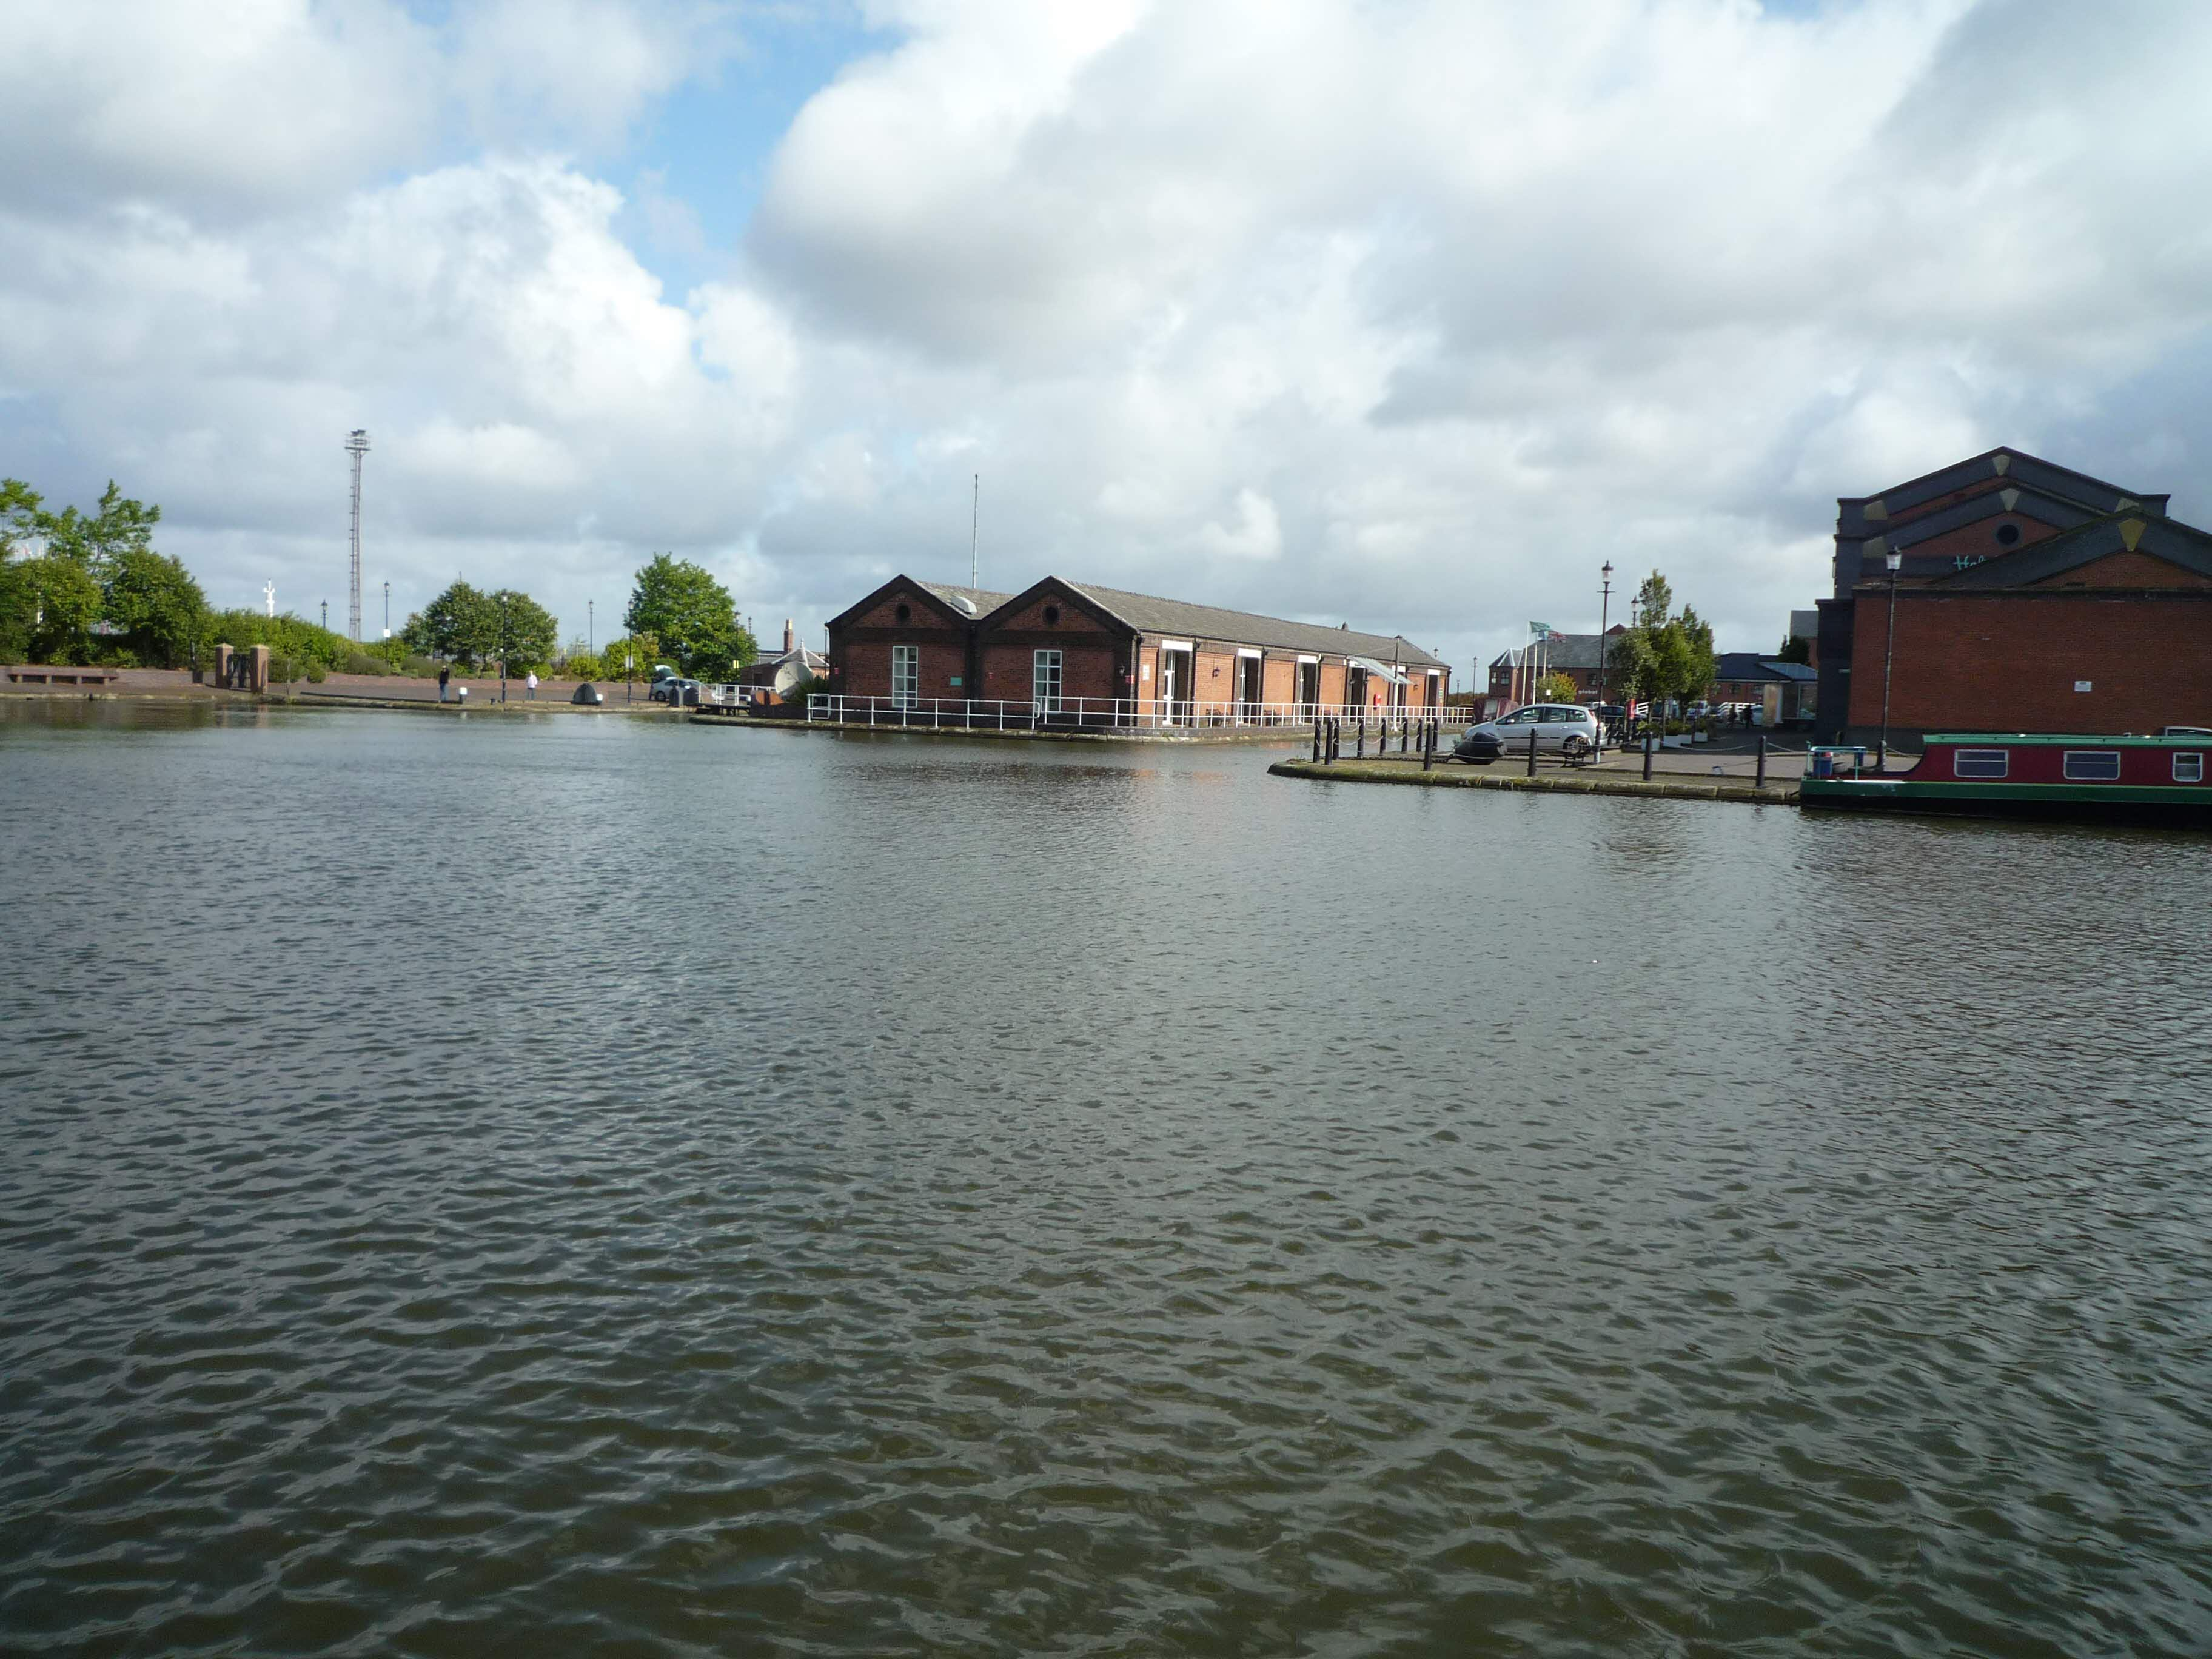 Part of the basin at Ellesmere Port